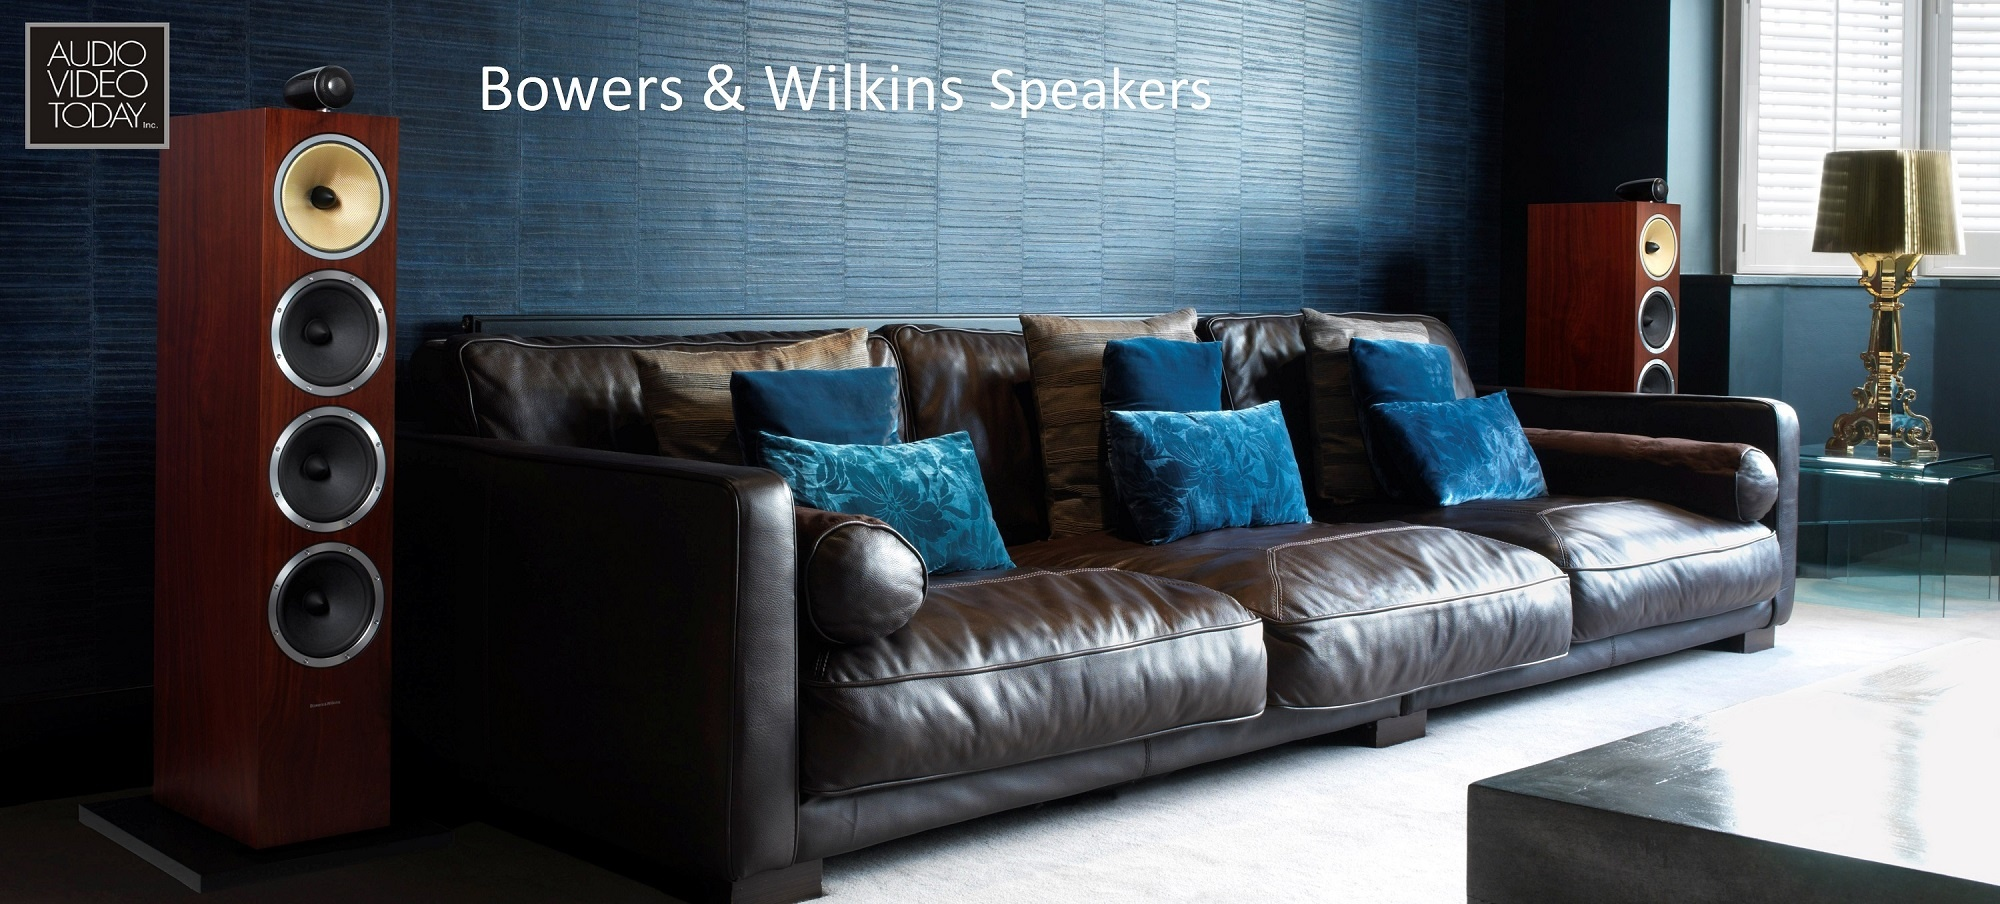 Bowers-and-Wilkins-3.jpg